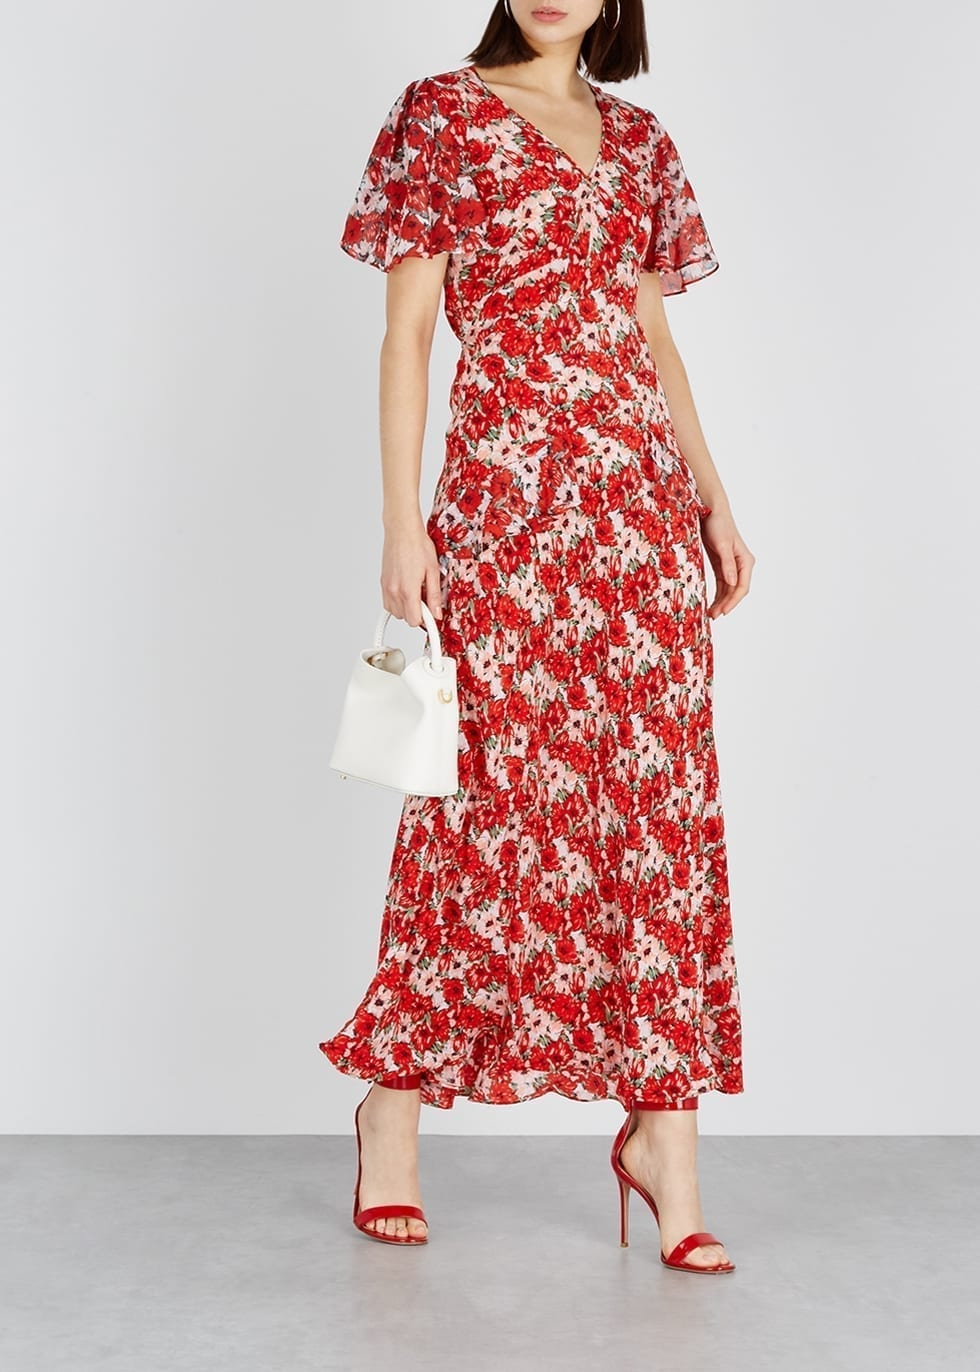 c1231b37c89a45 RIXO Evie Silk Maxi Red   Floral Printed Dress - We Select Dresses